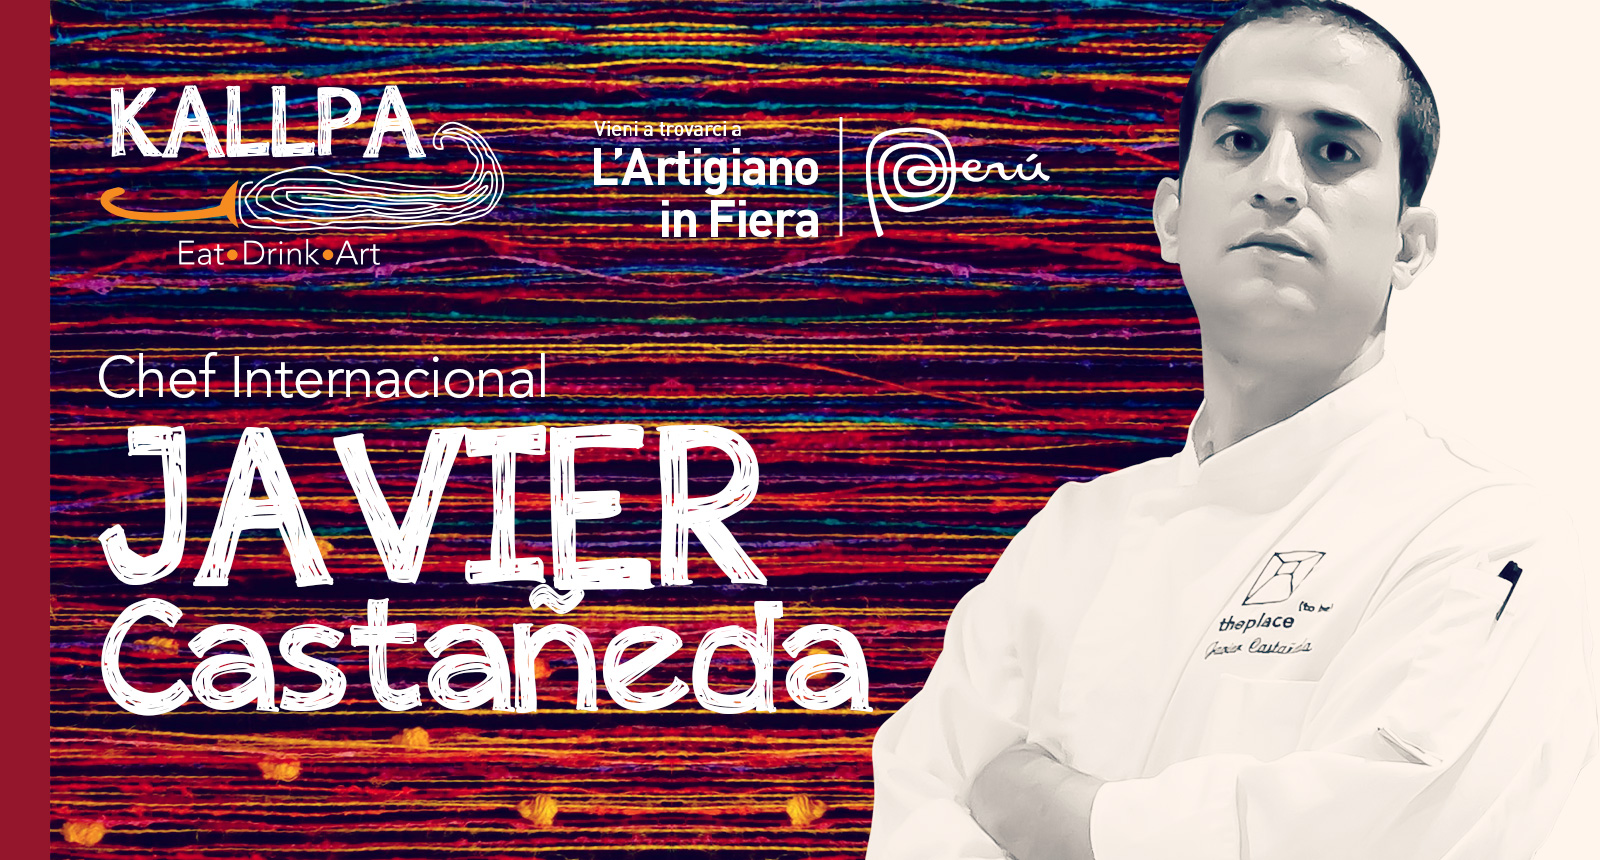 Lo chef Javier Castañeda, dal Santa Barbara di Madrid all'Artigiano in Fiera